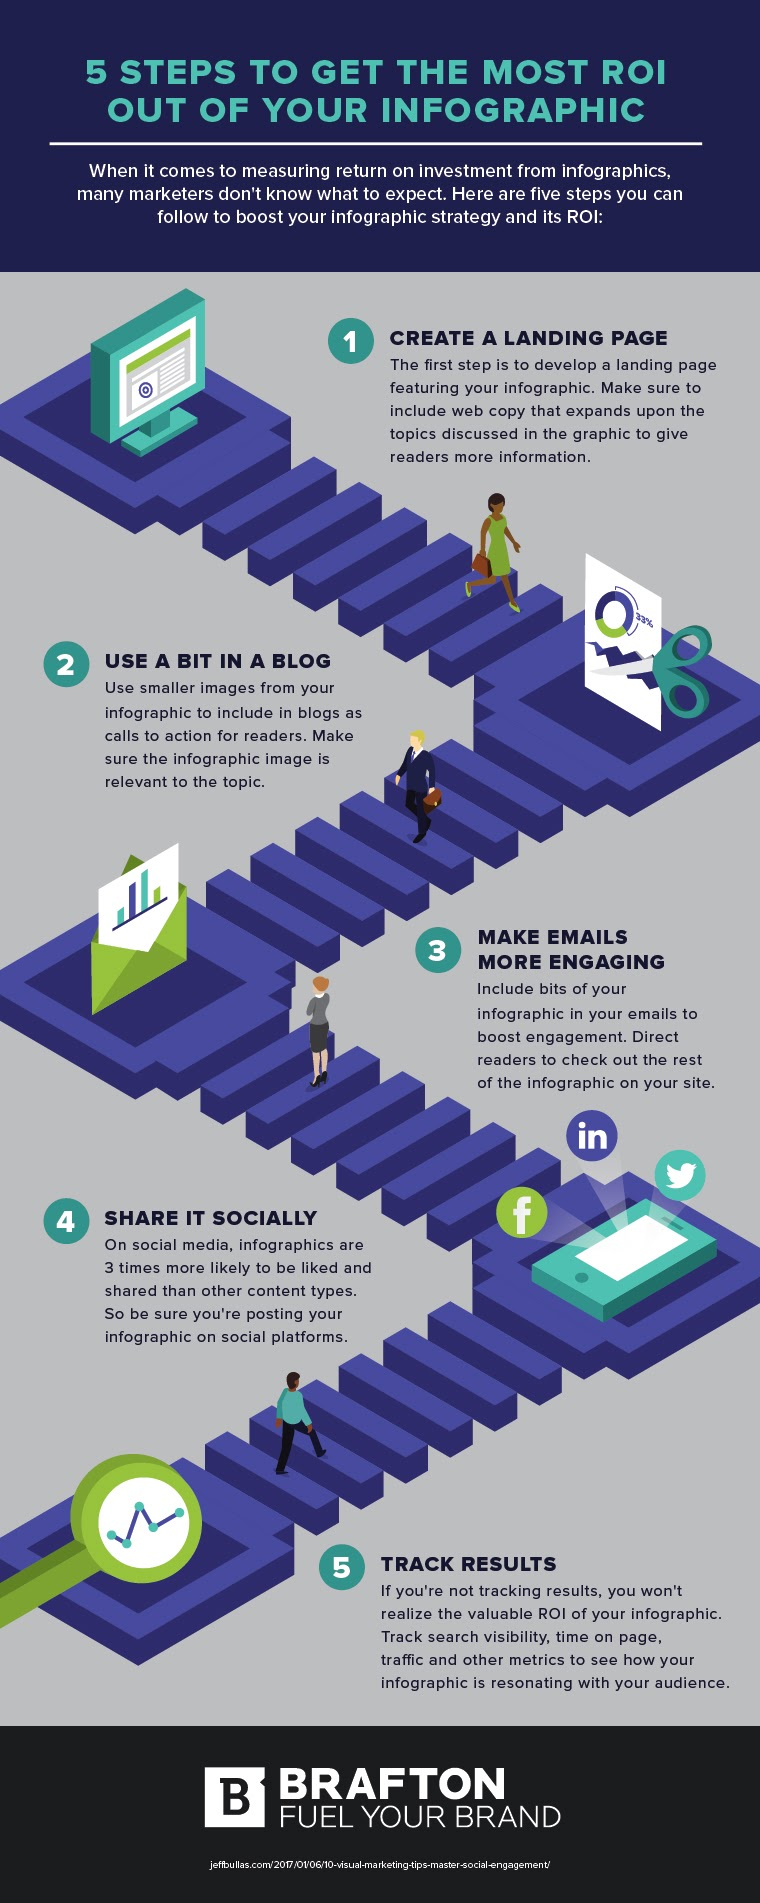 5 Steps to Get the Most Roi out of Your Infographic #Infographic